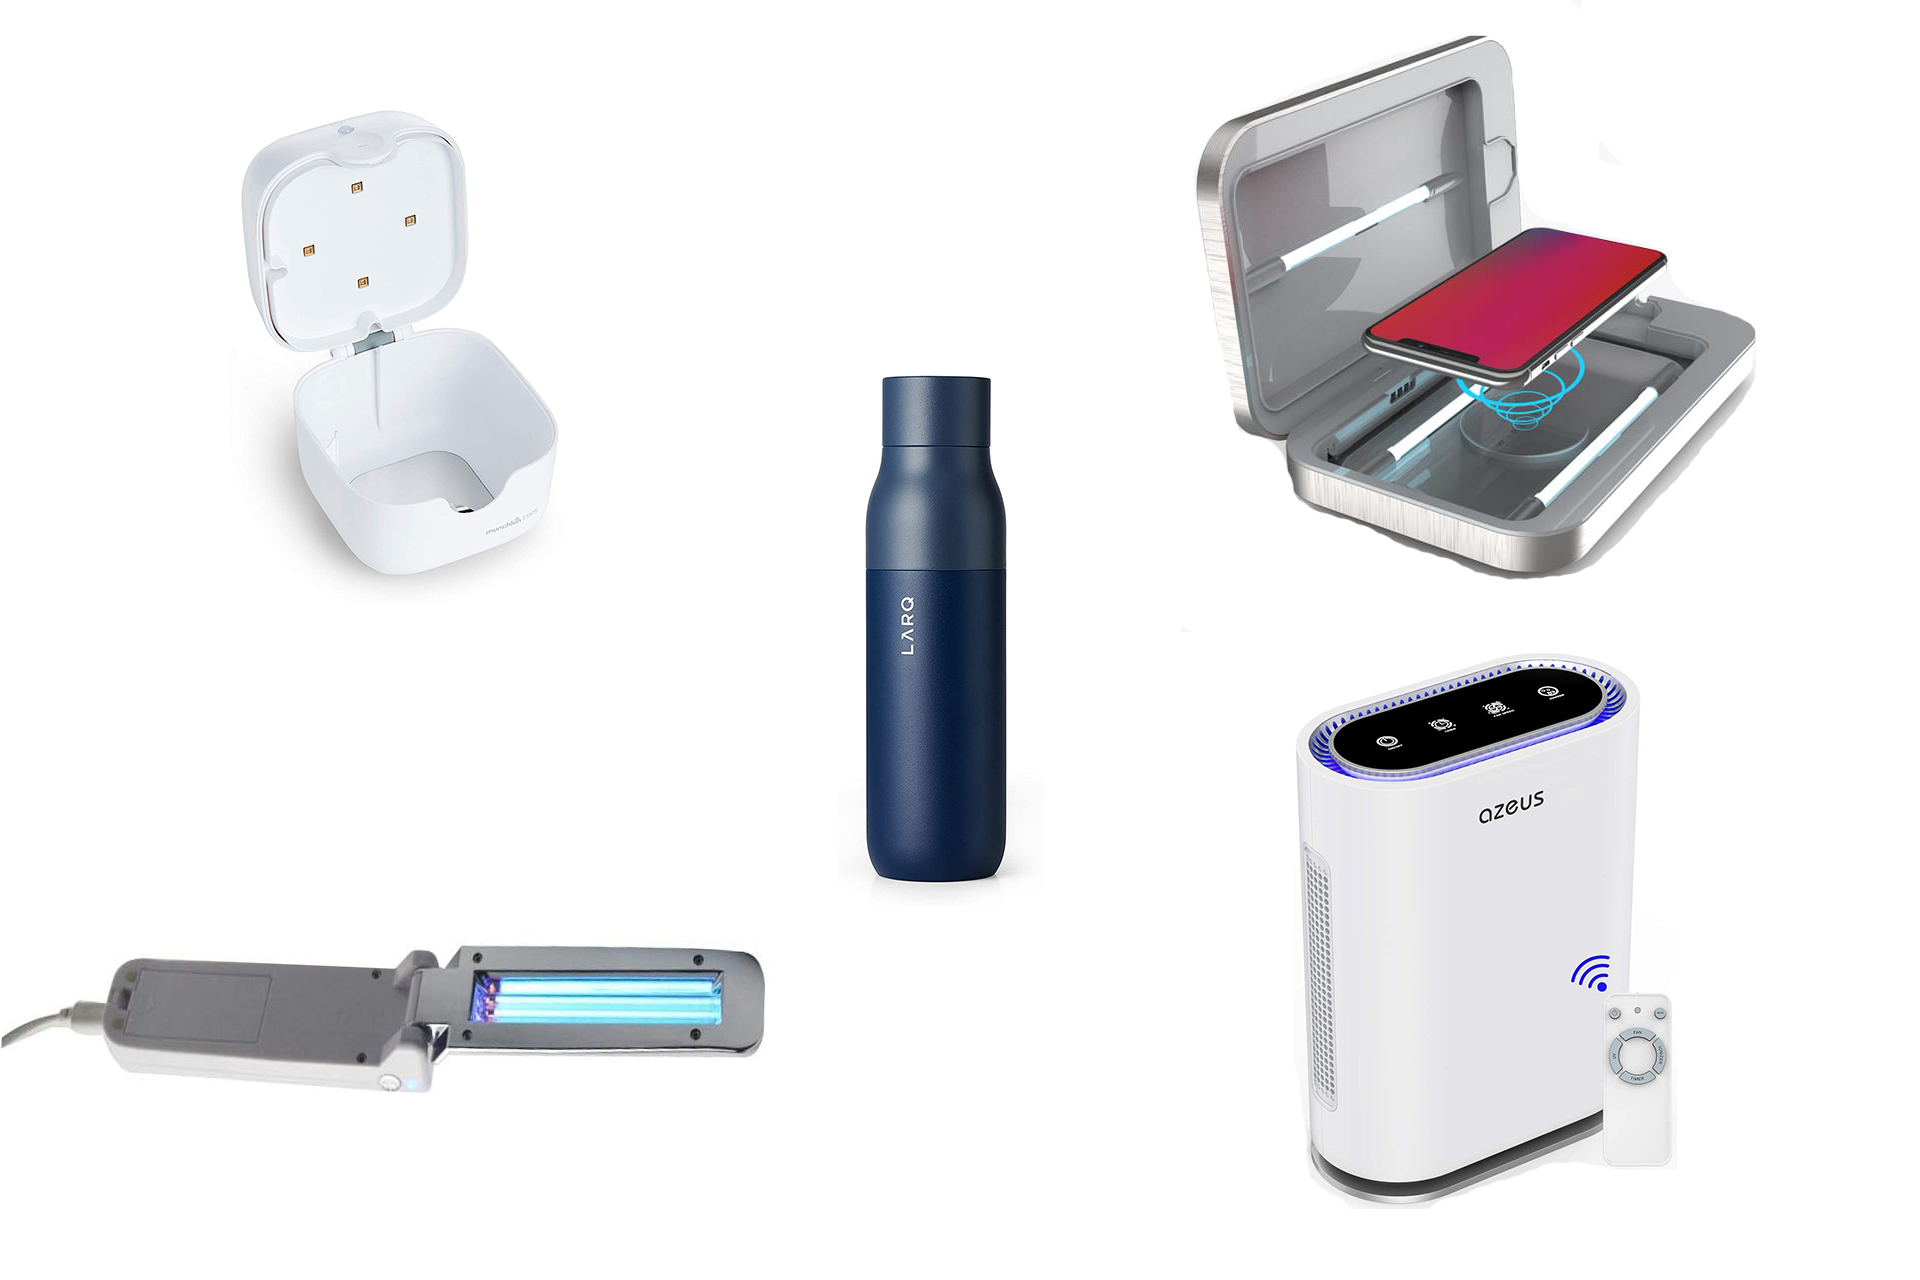 Uv Sanitizer Products Less Likely To Be Sold Out Than Wipes And Sprays